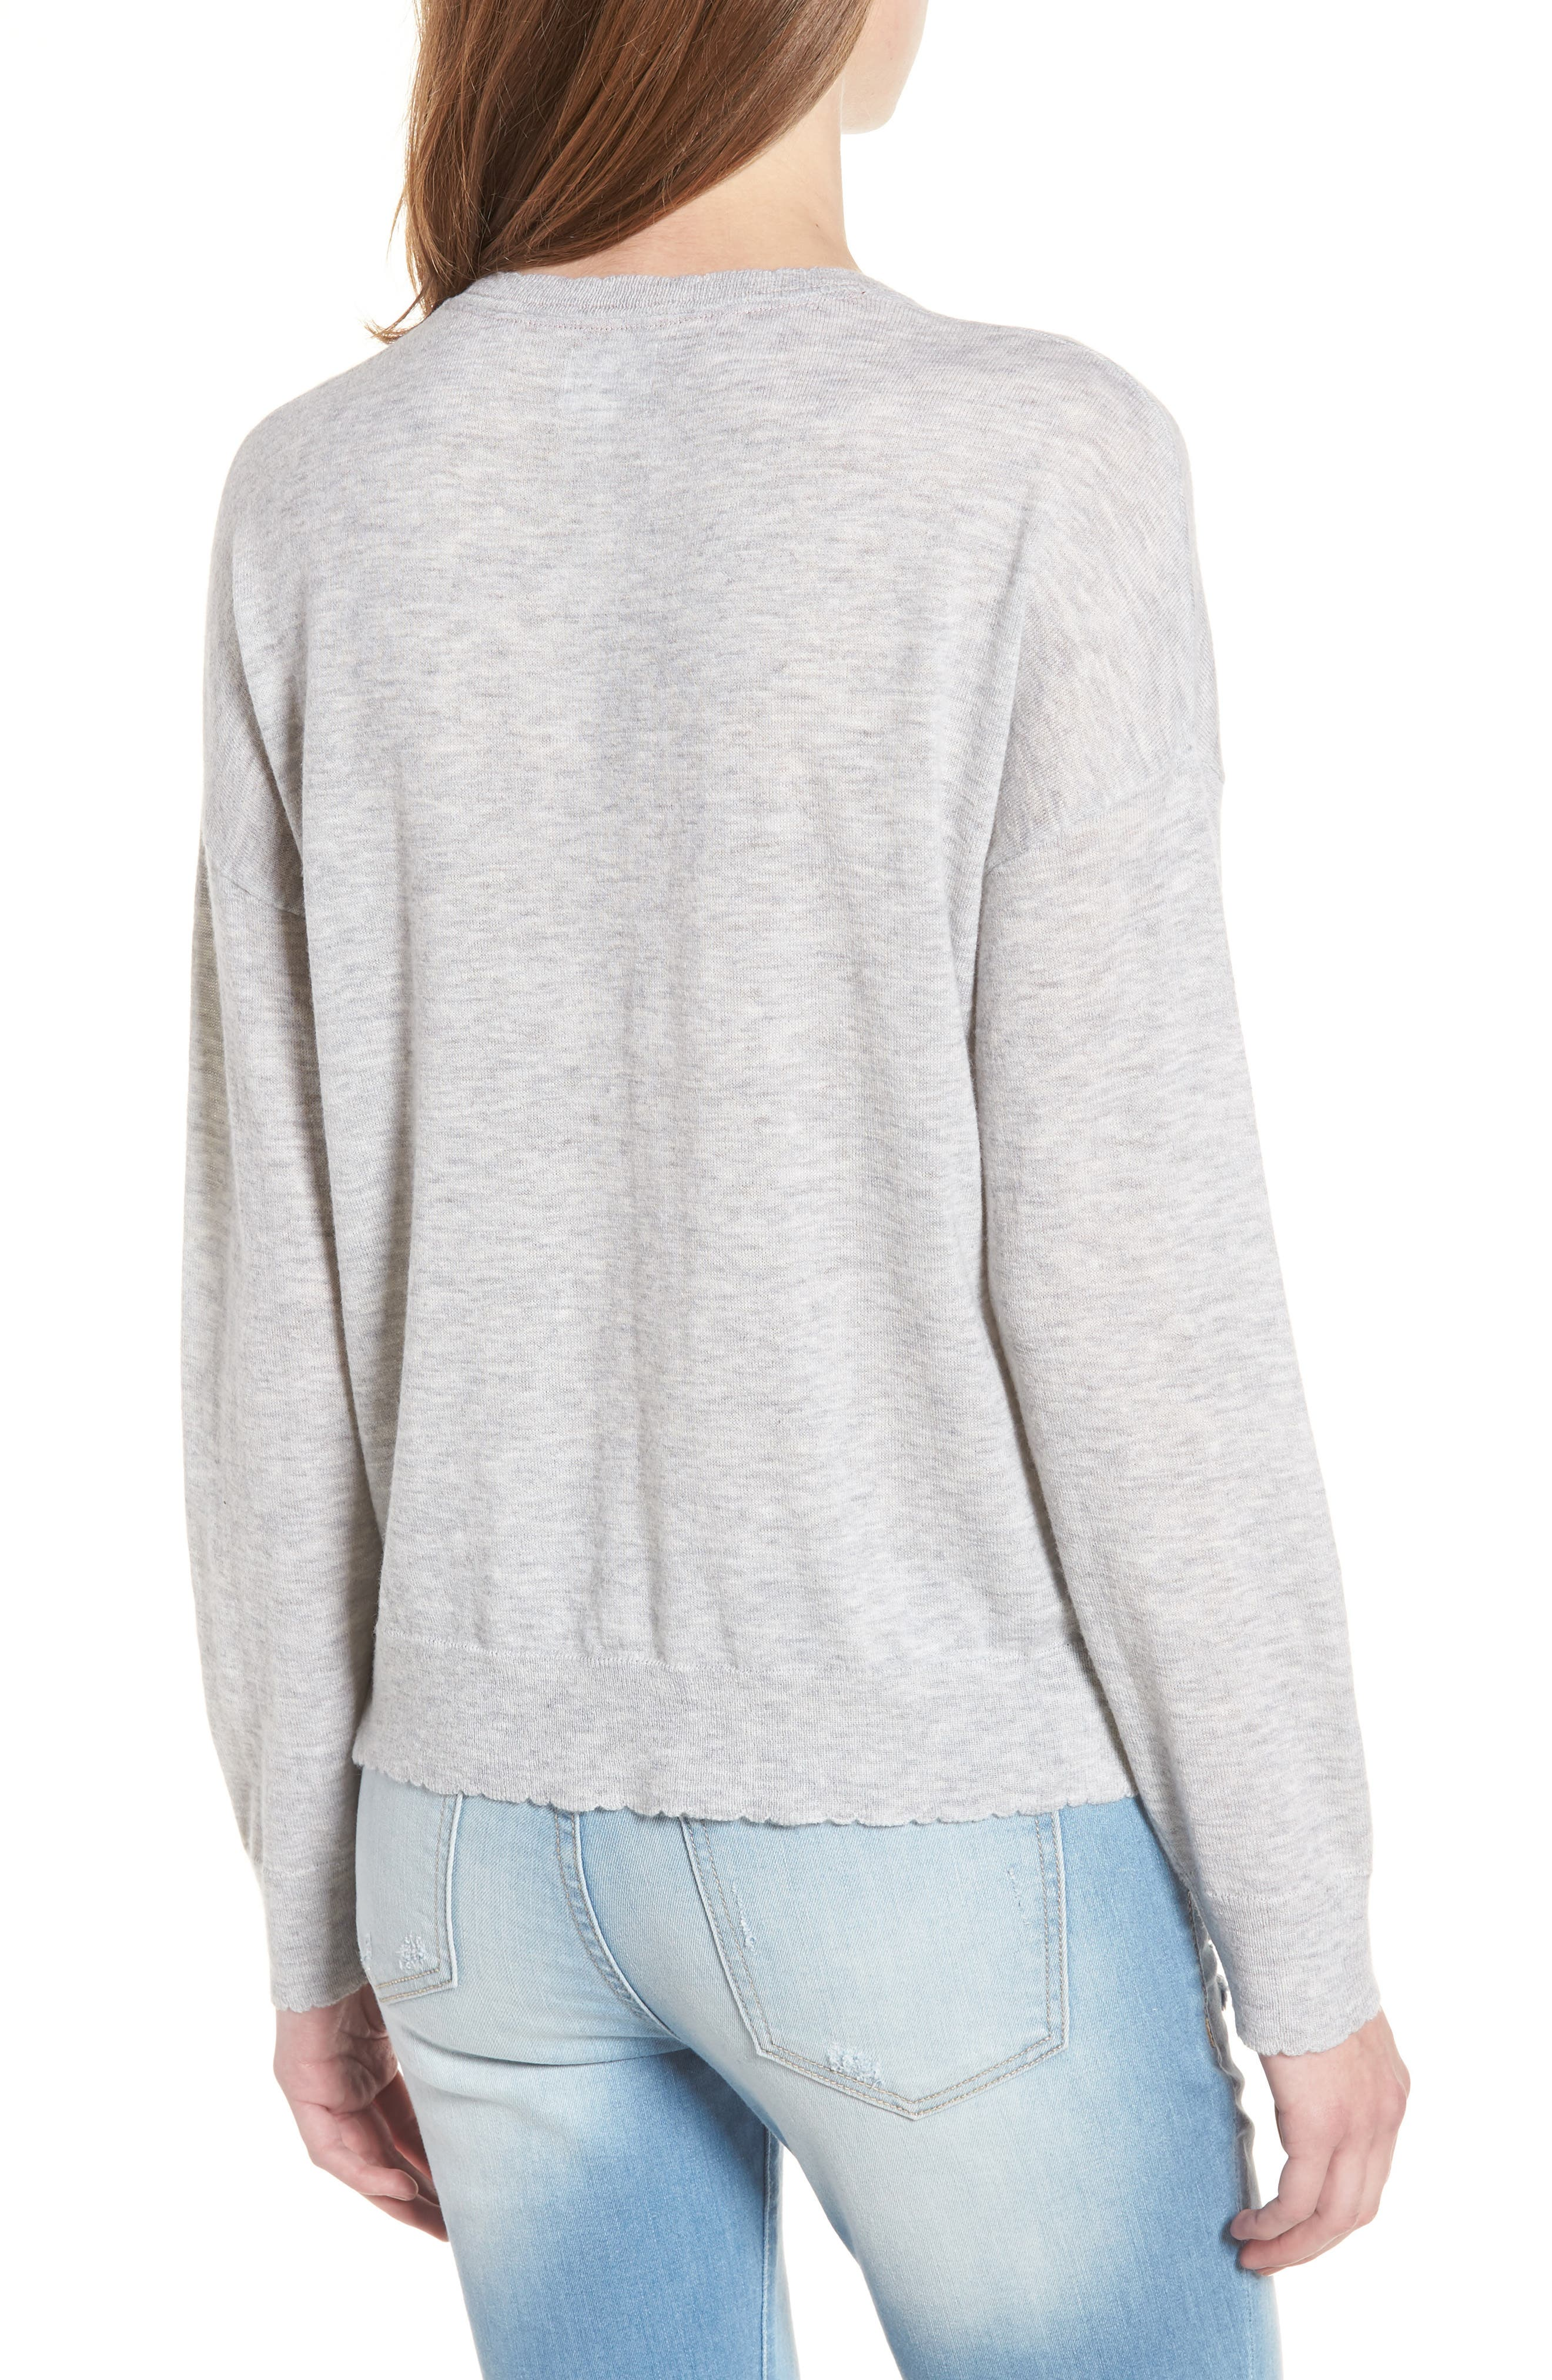 Amour Wool & Cashmere Sweater,                             Alternate thumbnail 2, color,                             Heather Grey